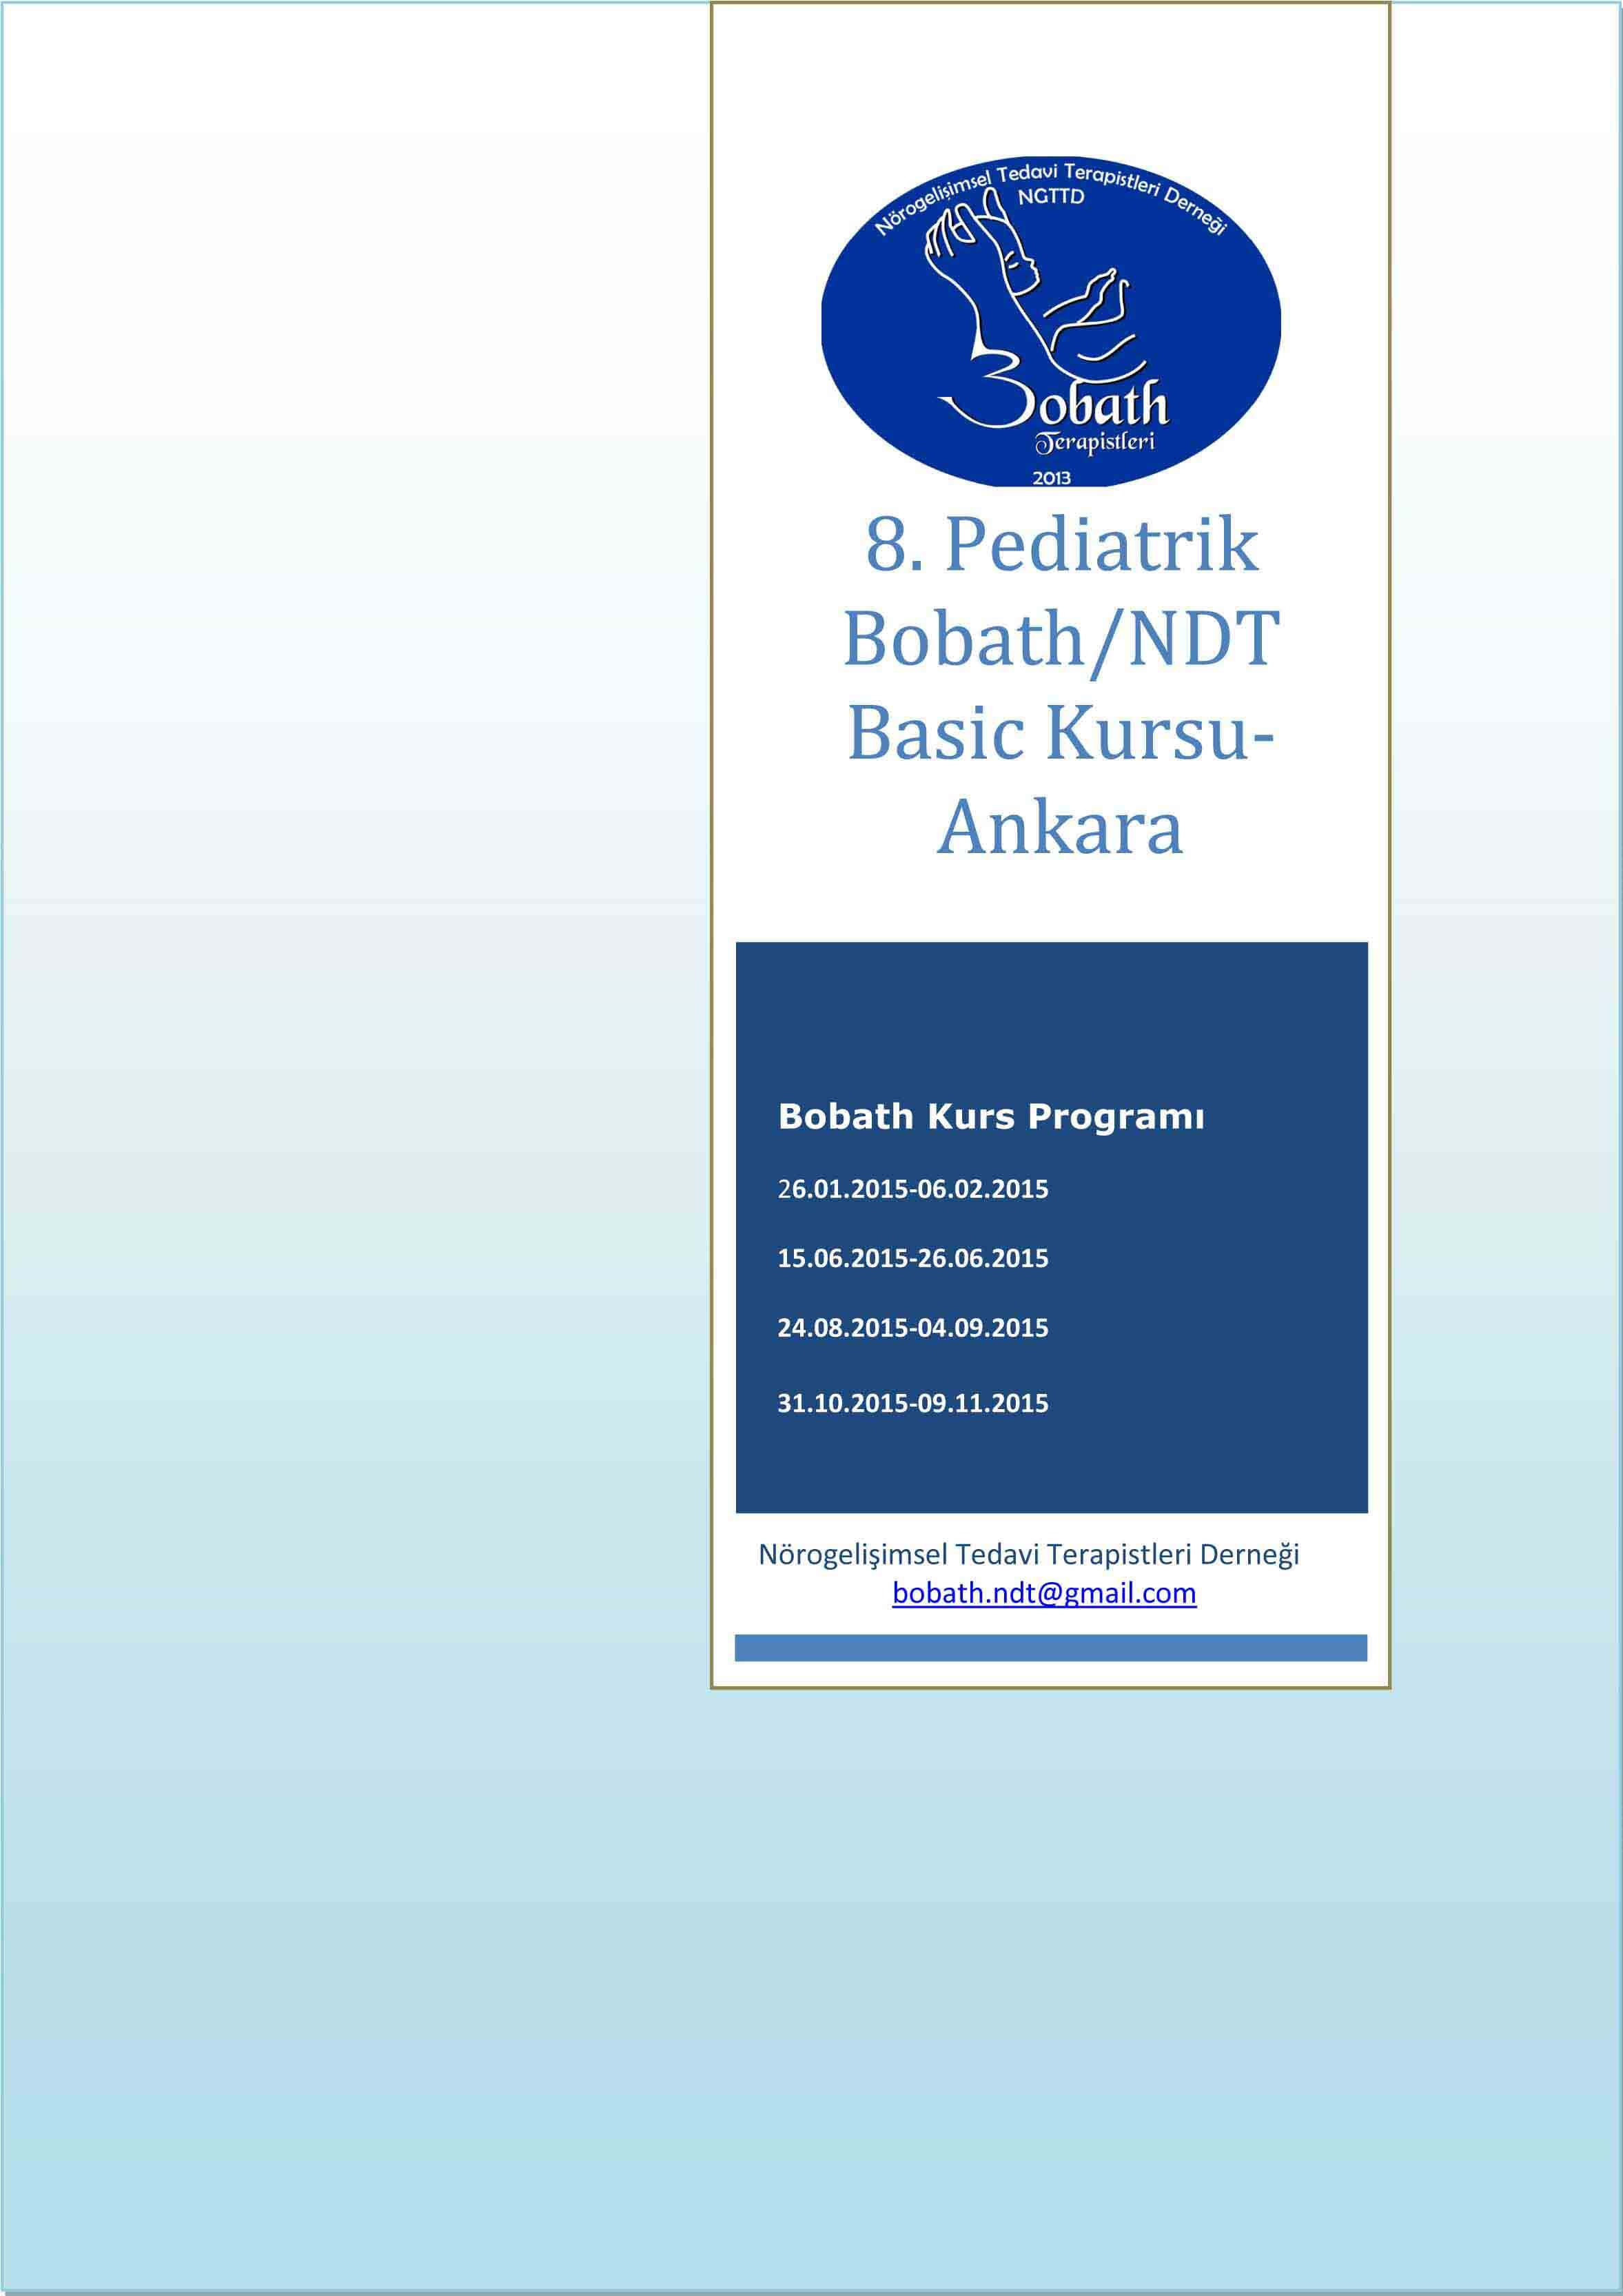 8. Pediatrik Bobath/NDT Basic